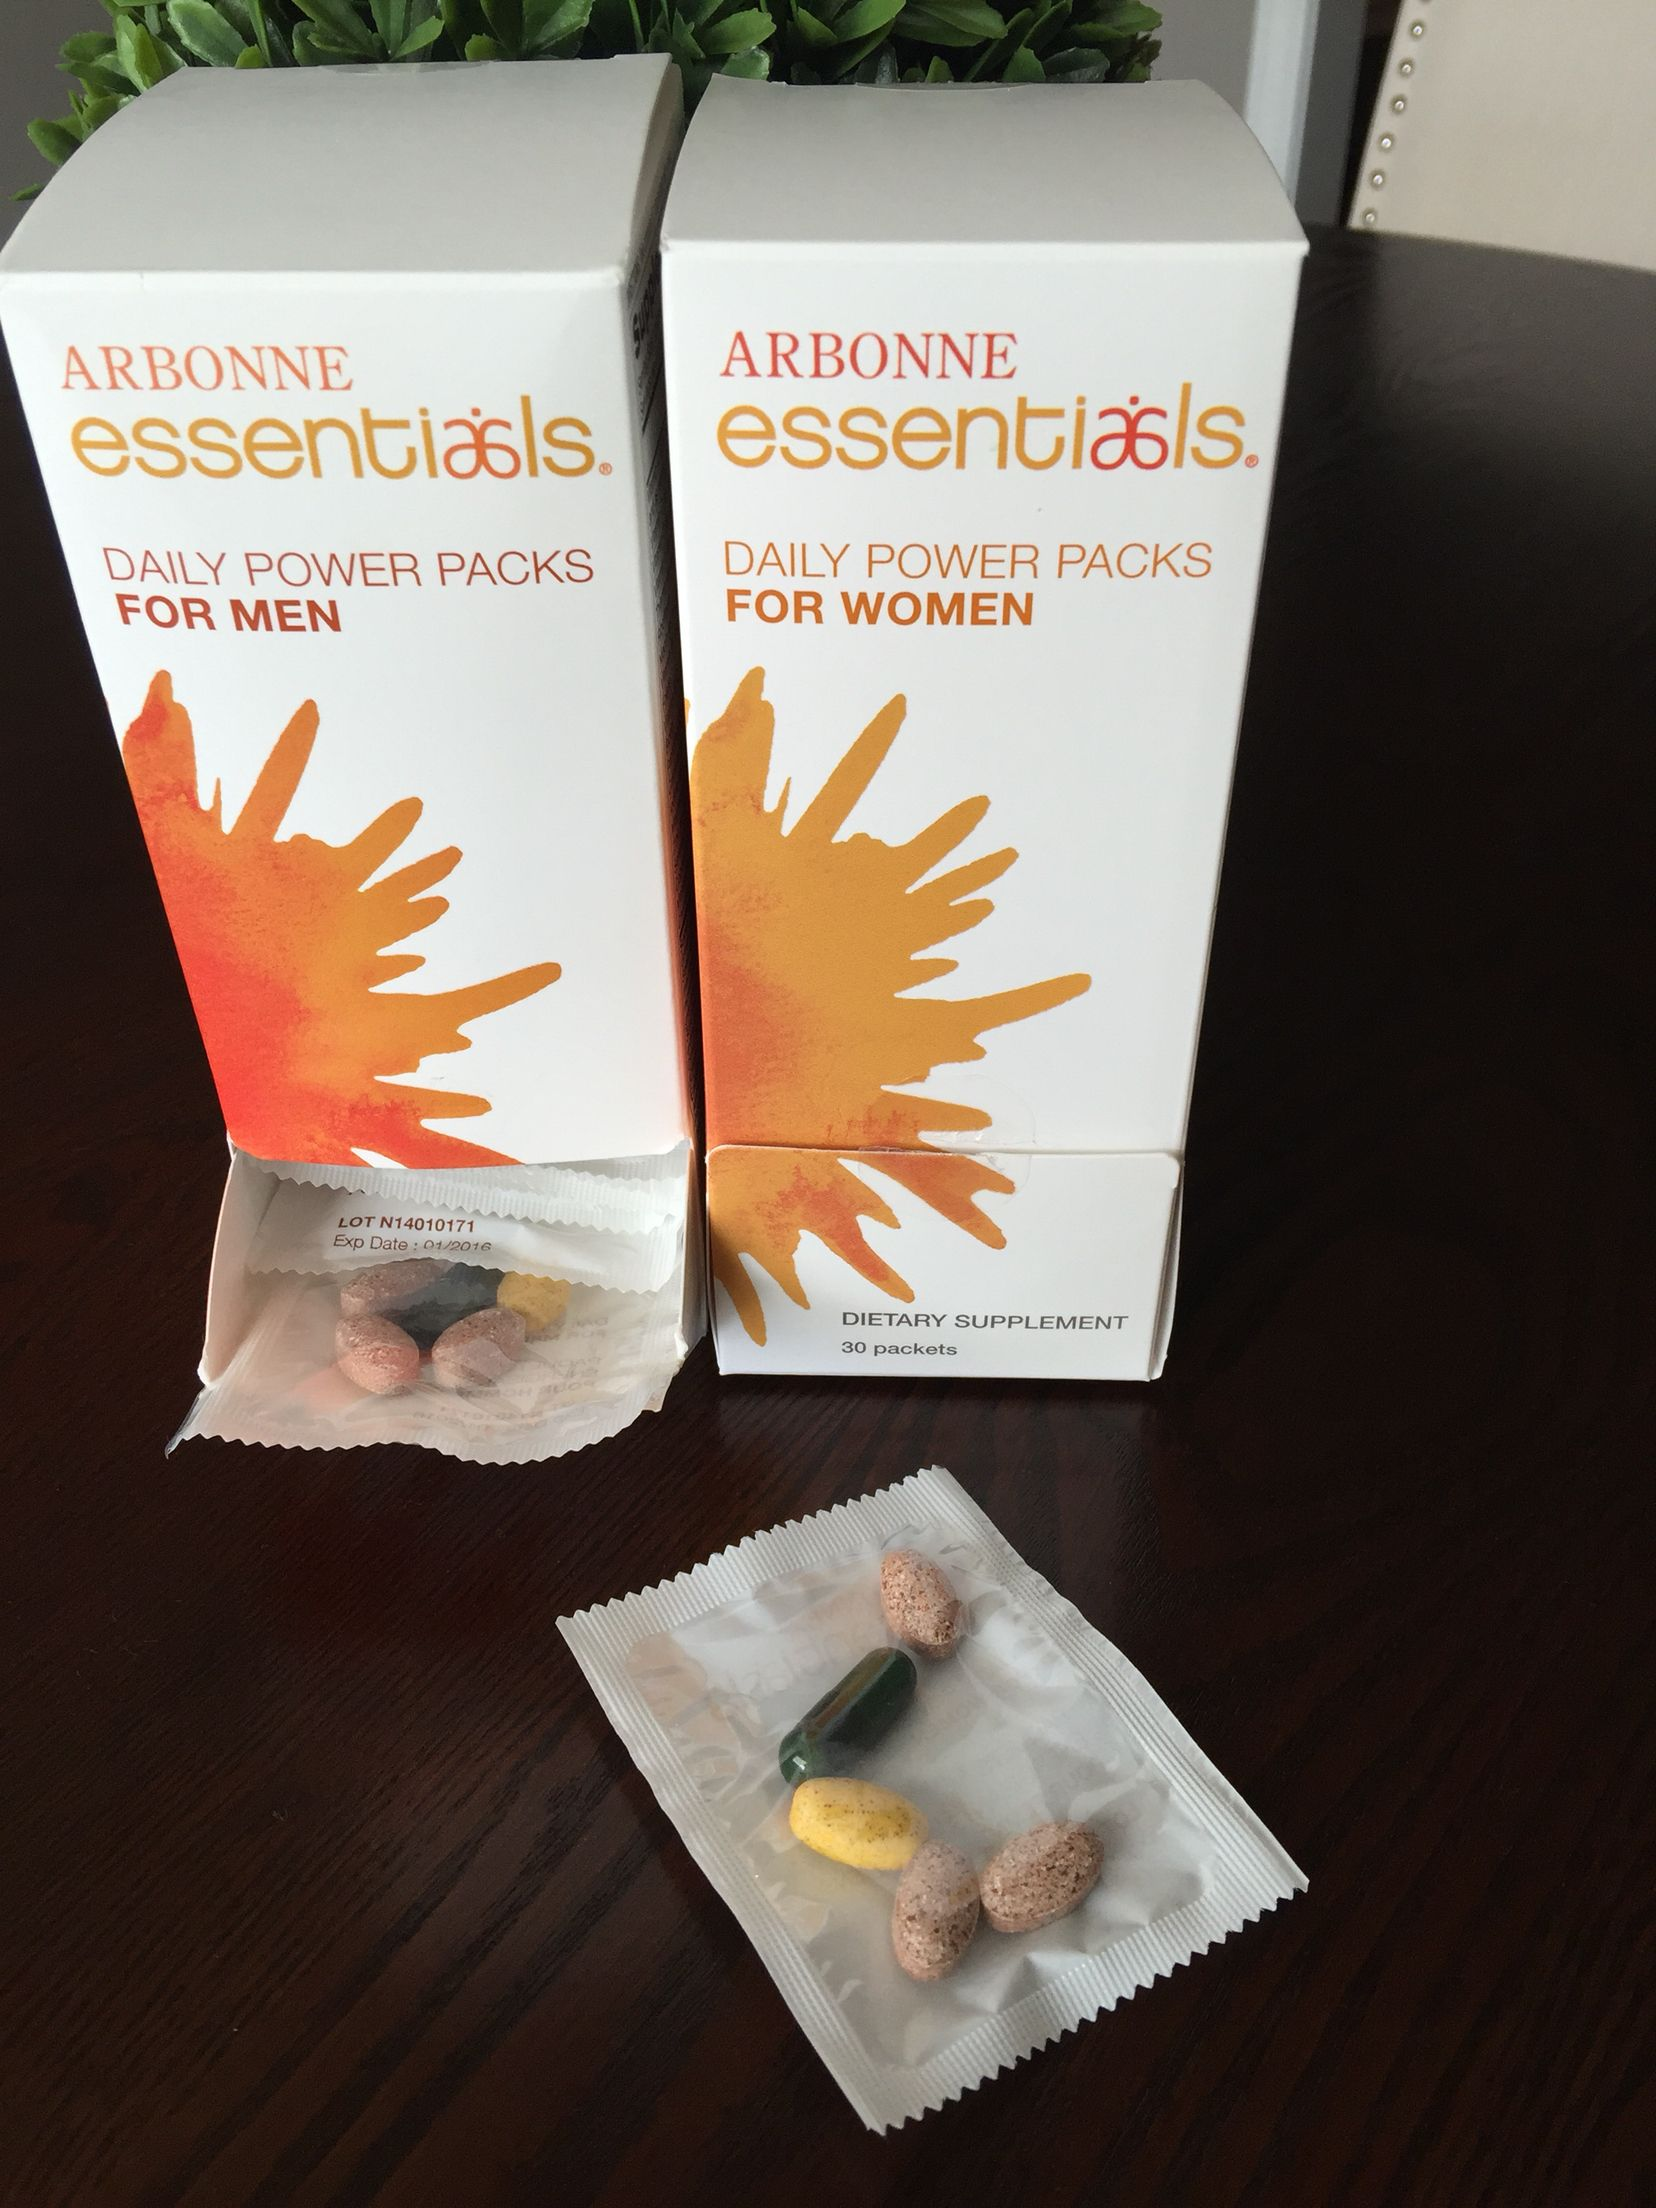 Amazing energy with 20 essential vitamins and minerals. My